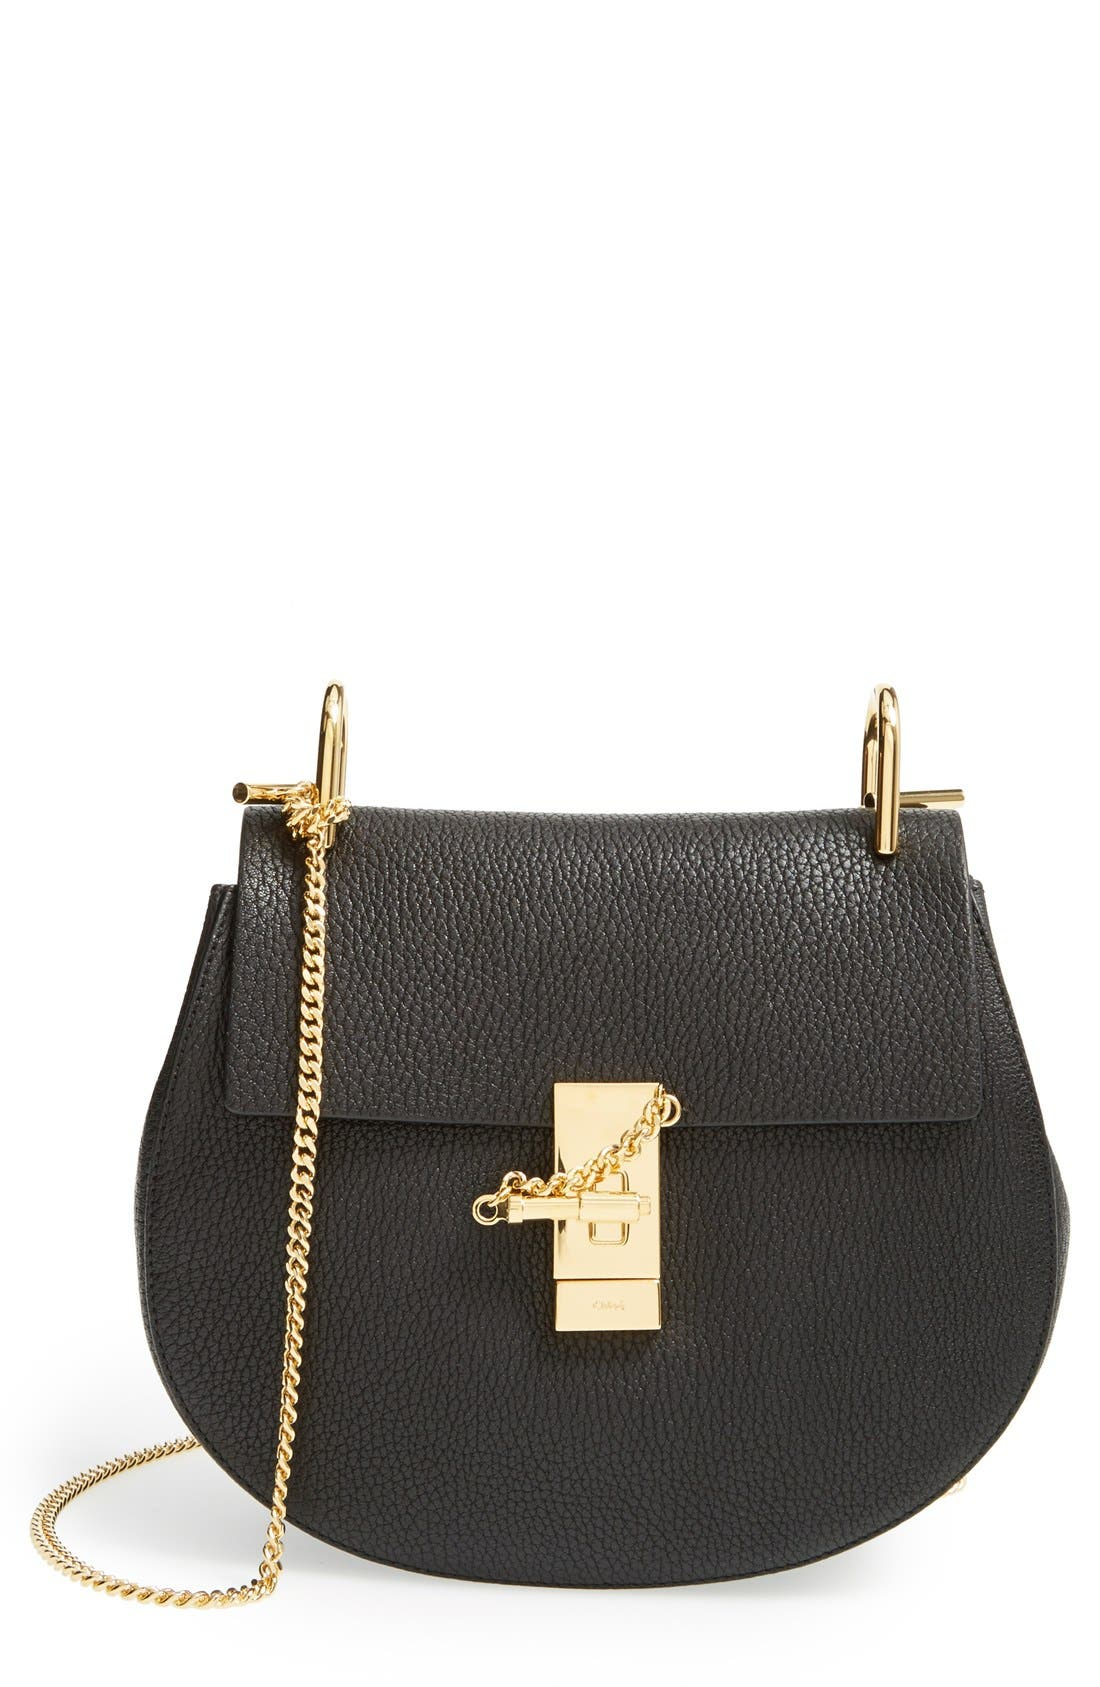 Drew Leather Shoulder Bag,                         Main,                         color, Black Gold Hrdwre